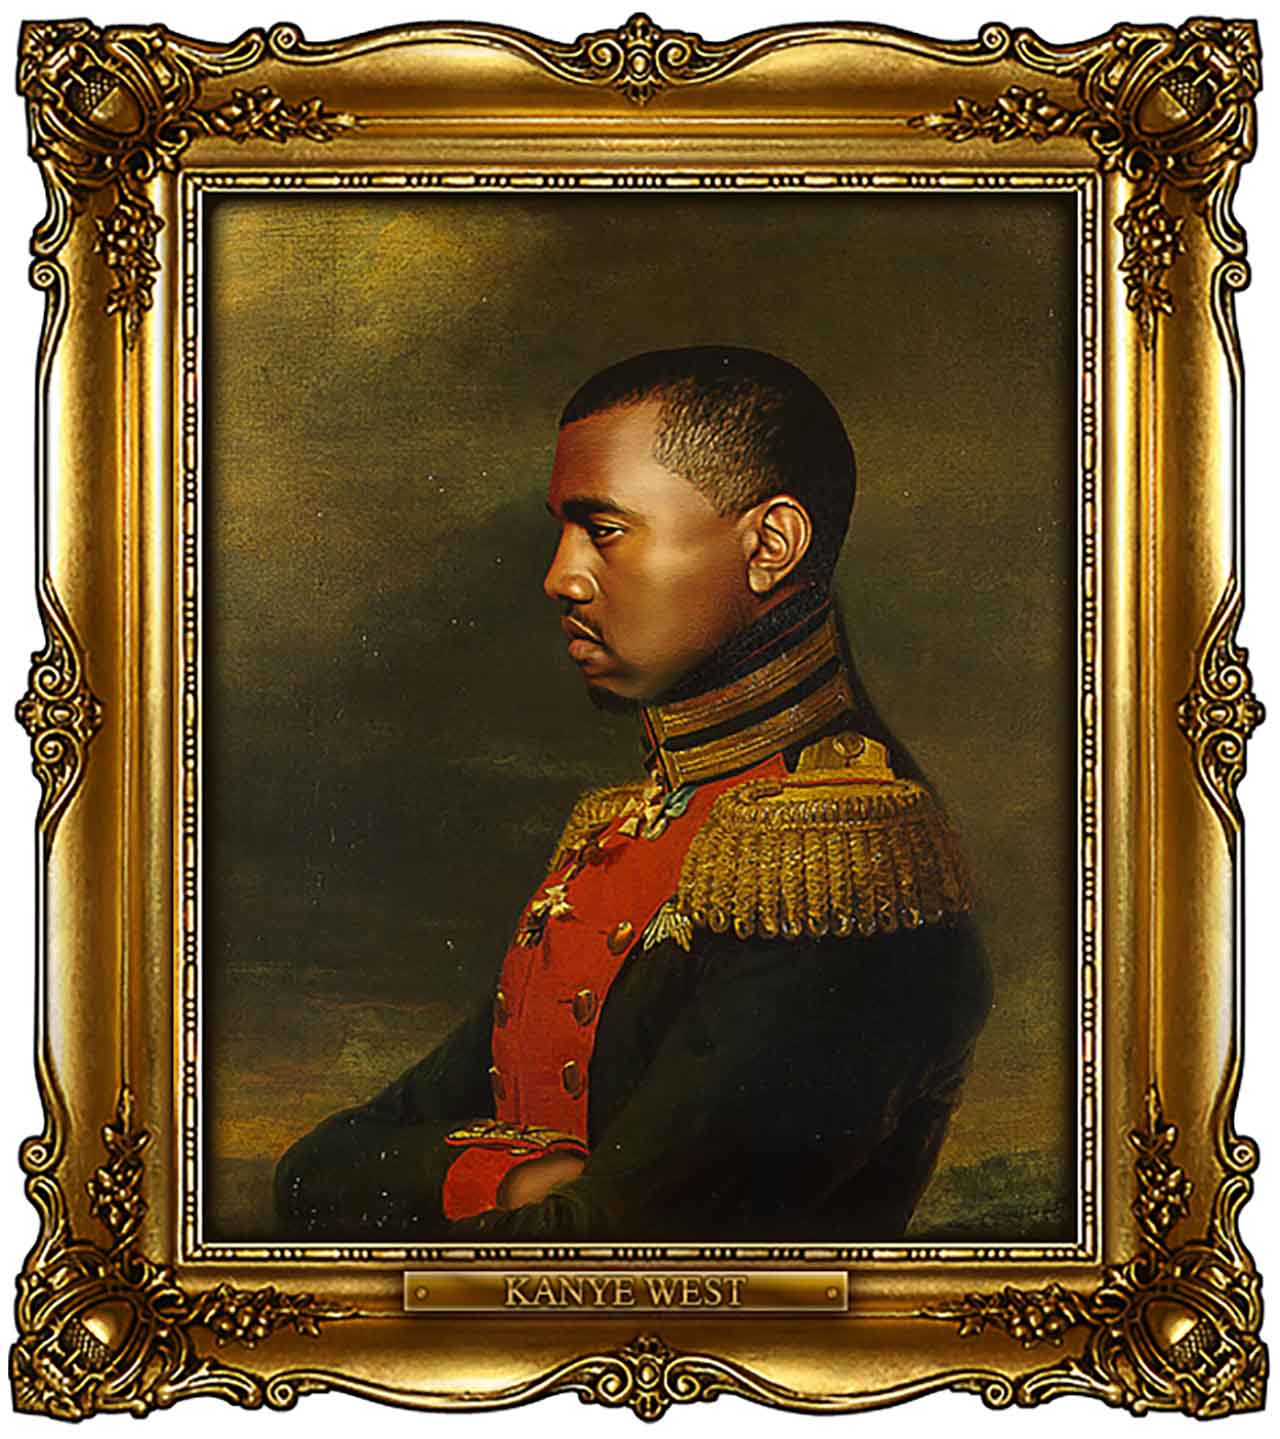 Artist Turns Famous Actors Into Russian Generals - Kanye West